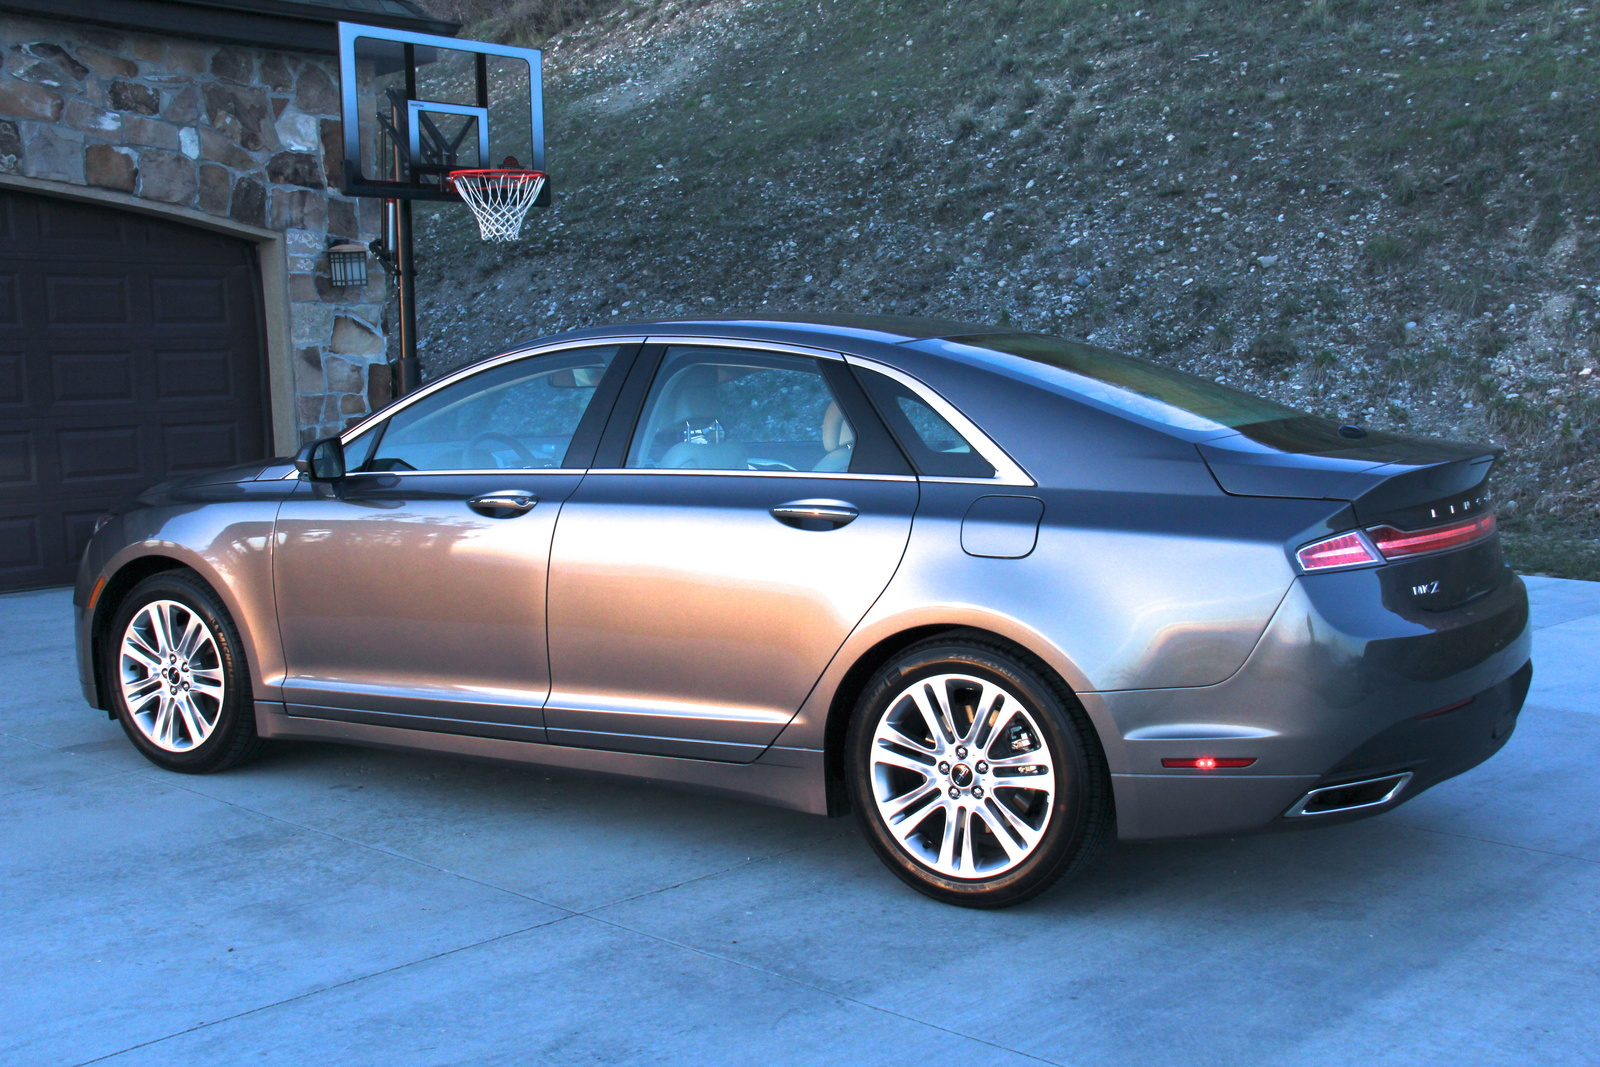 2012 Lincoln Mkz Hybrid Review >> 2014 Lincoln Mkz Hybrid Release Date And Review Ford .html   Autos Weblog